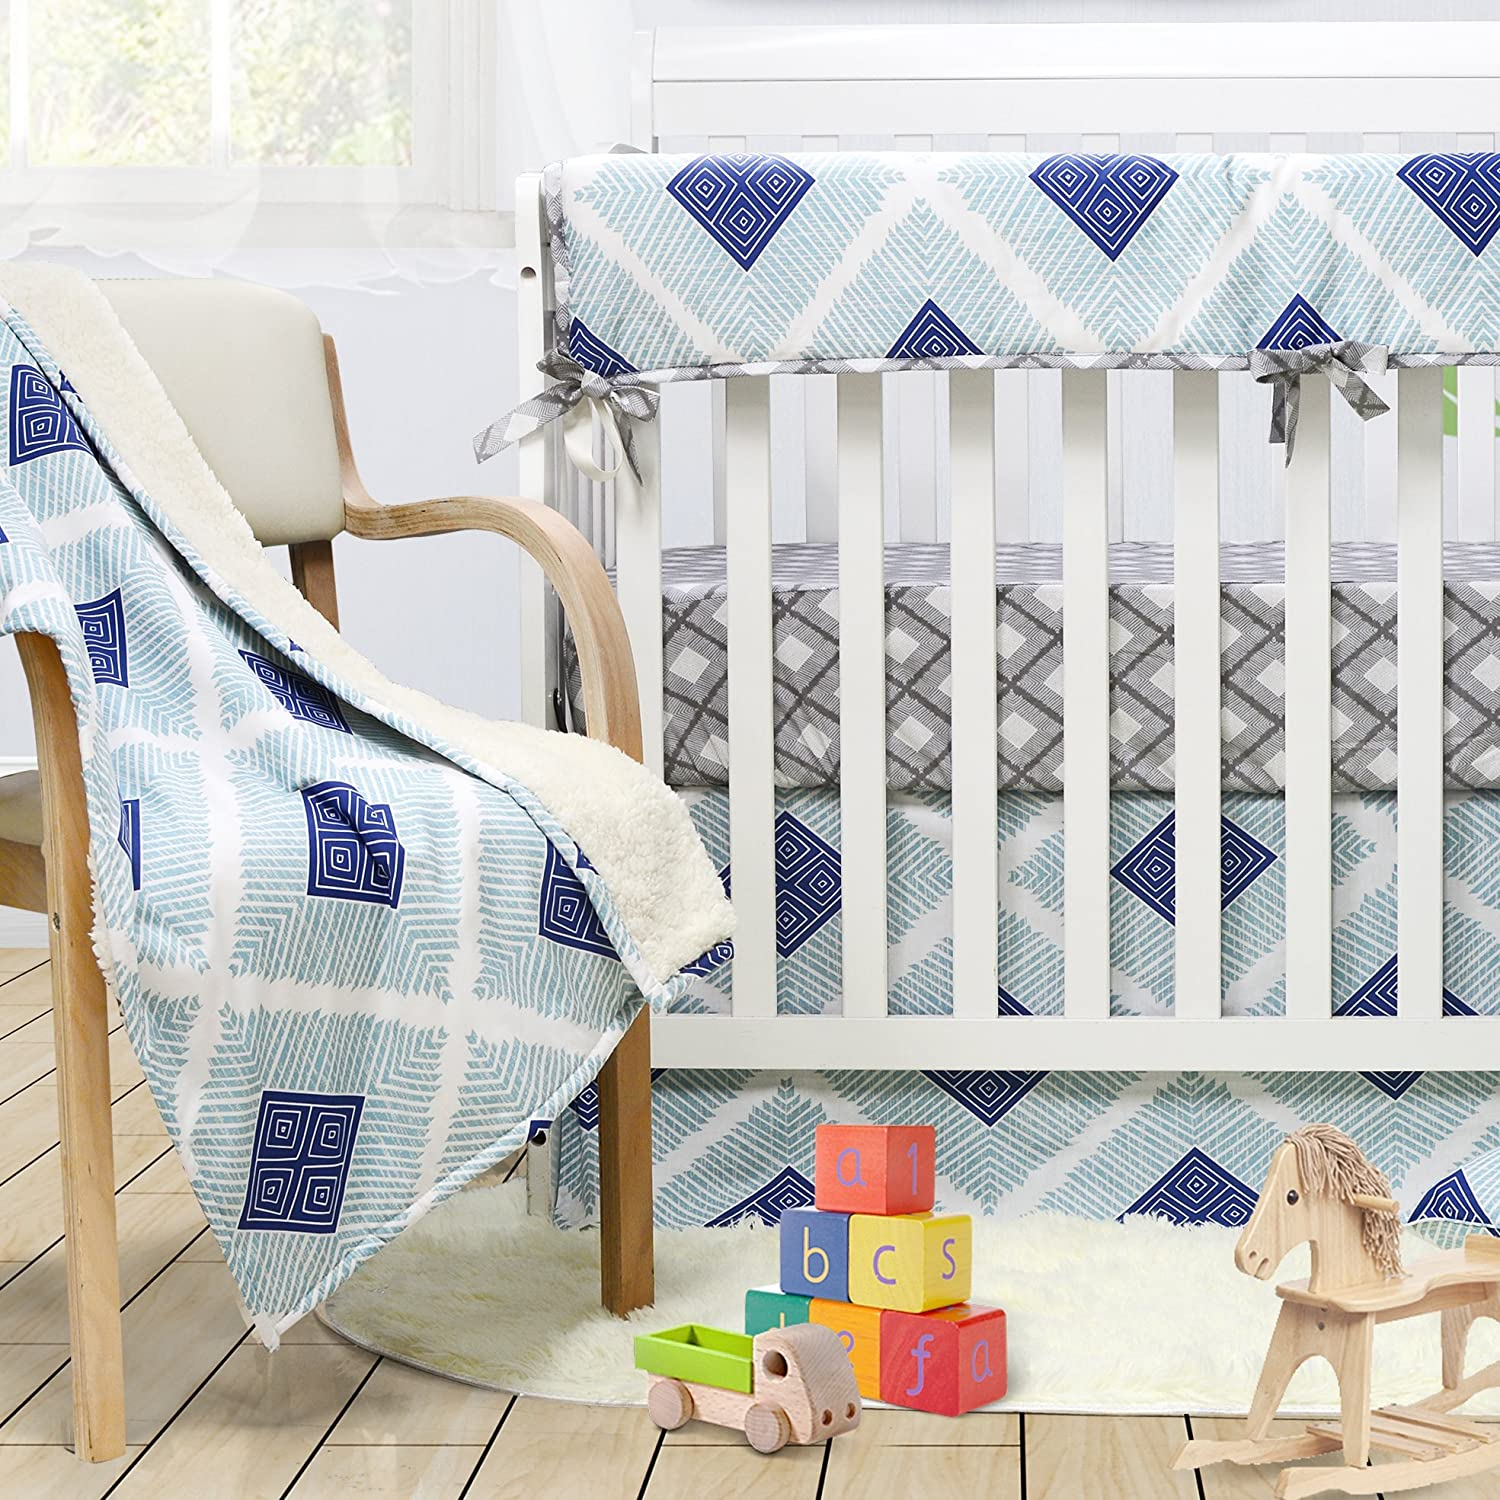 Brandream Boho Plaid Crib Bedding Set for Boys bluee Baby Bedding Crib Set, 100% Soft Cotton, Hypoallergenic & Breathable, 3 Pieces